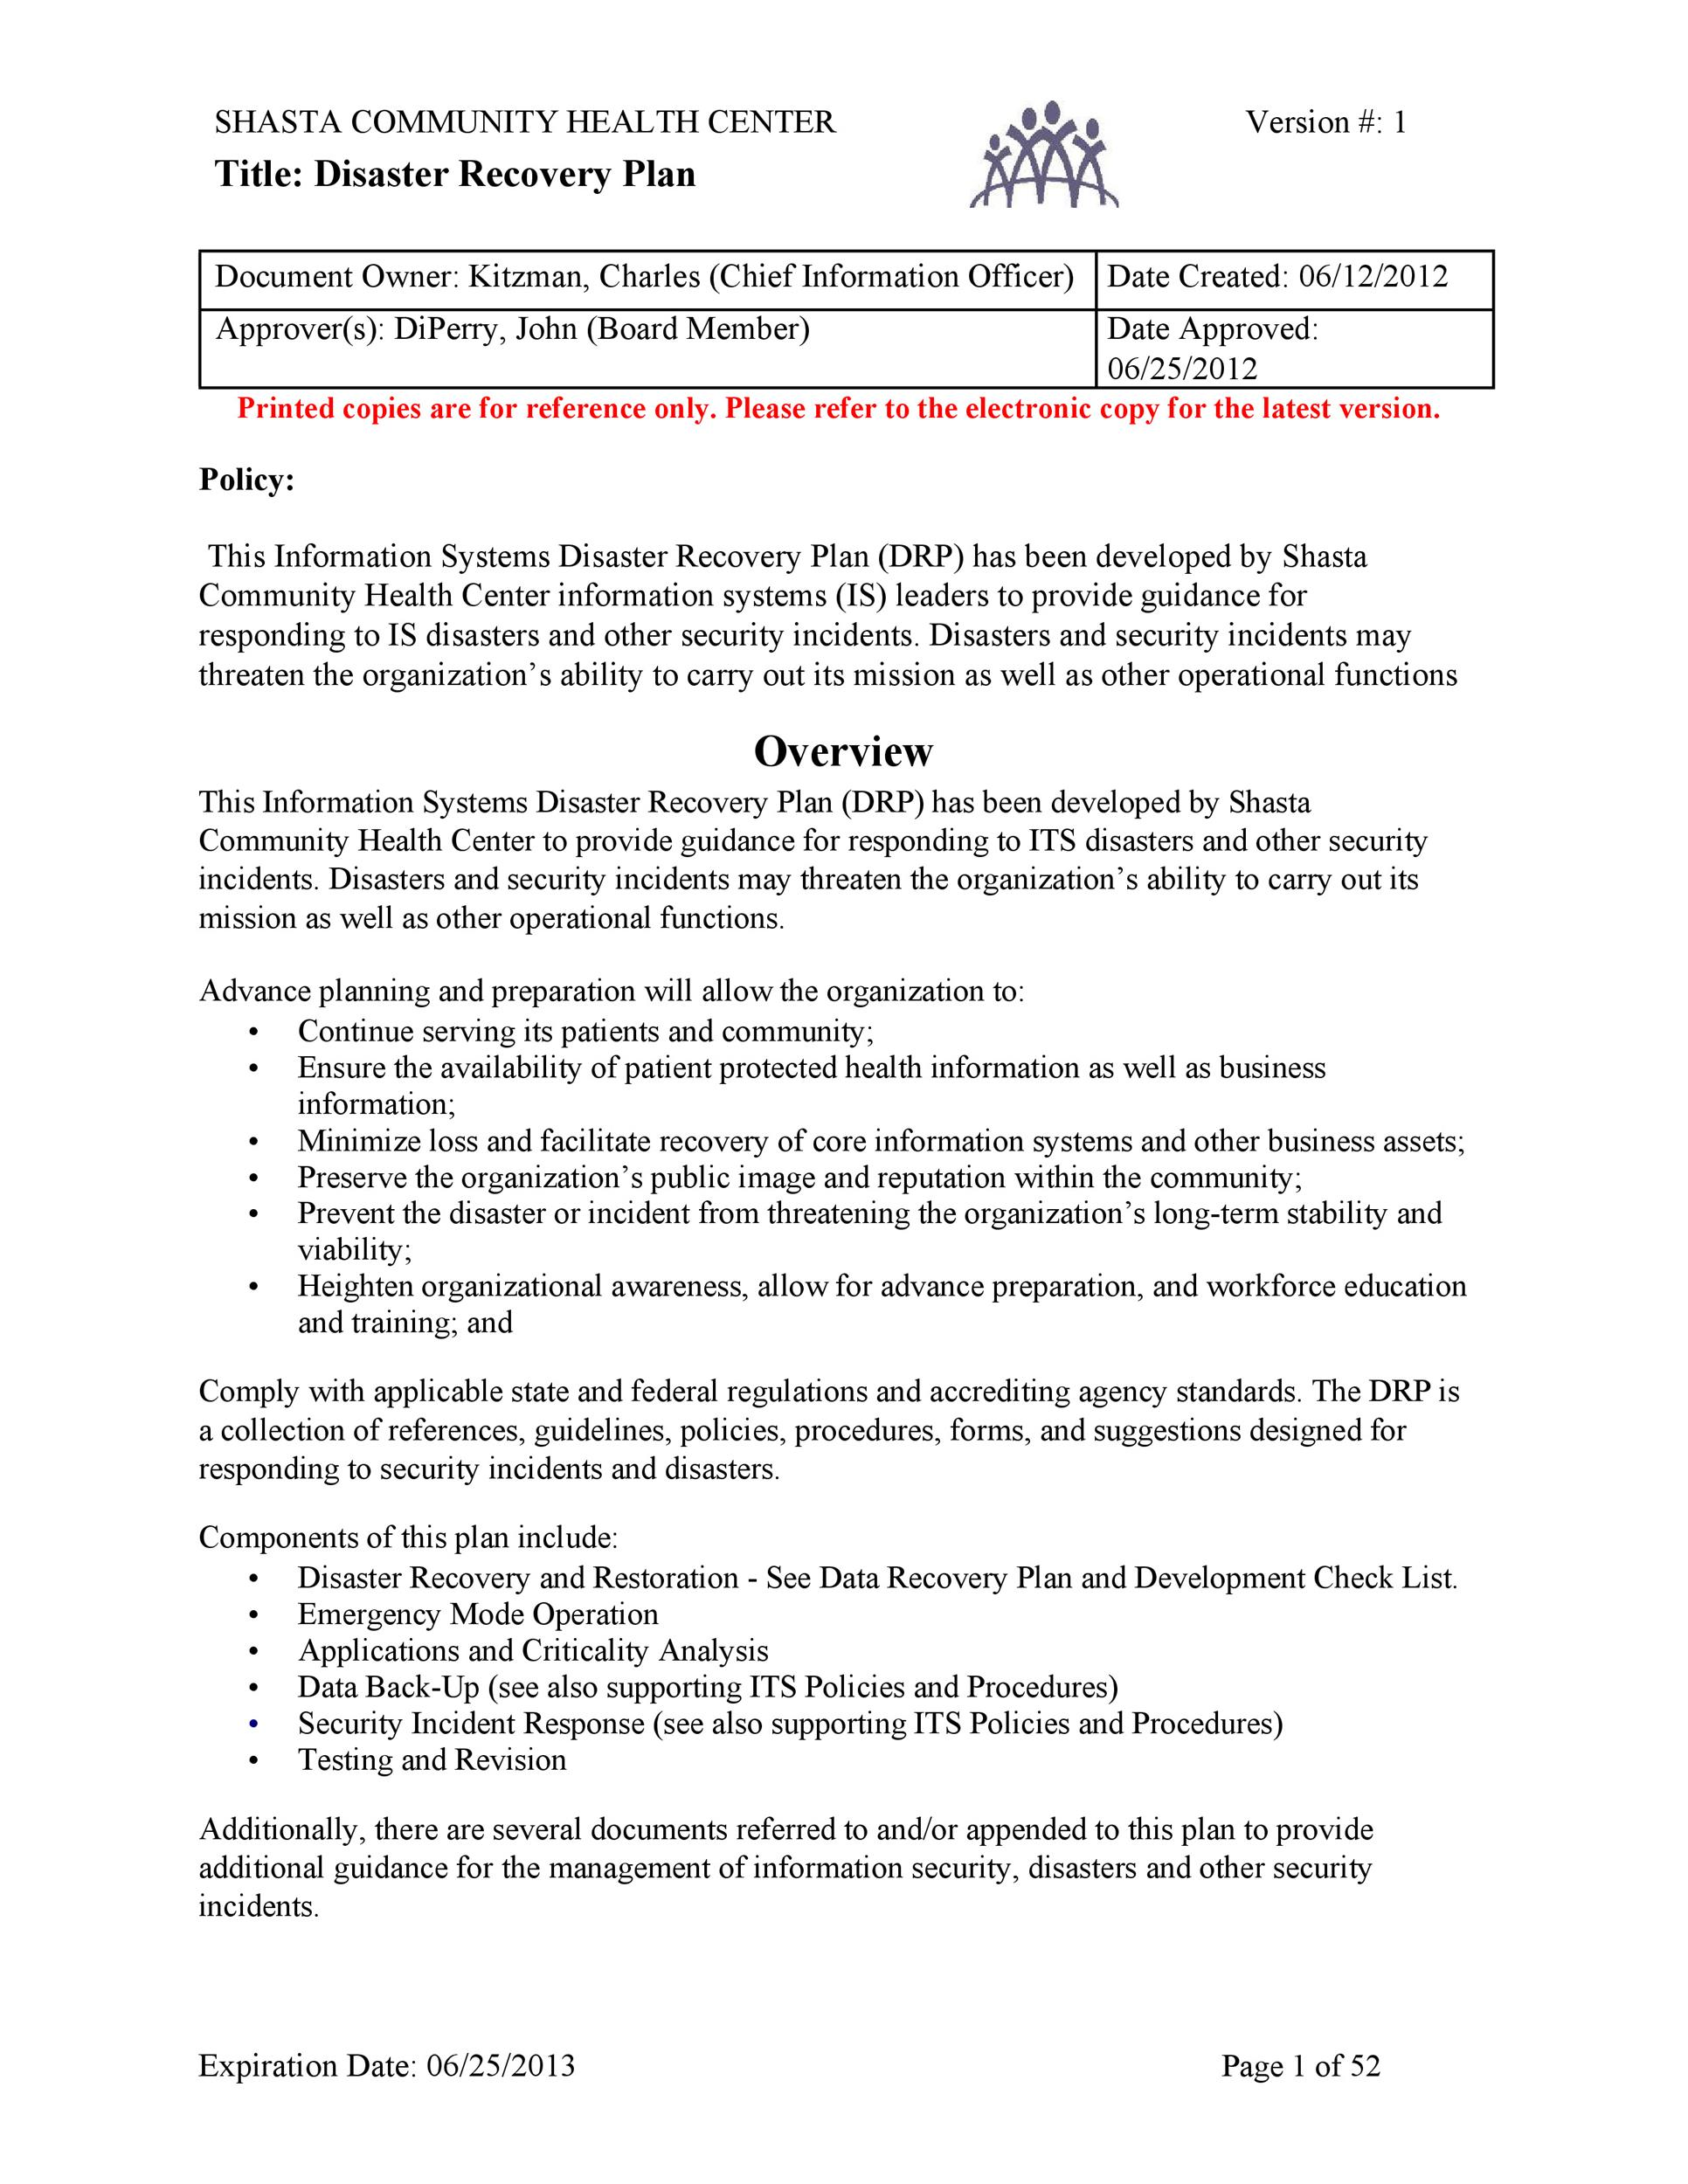 52 Effective Disaster Recovery Plan Templates DRP - Template Lab